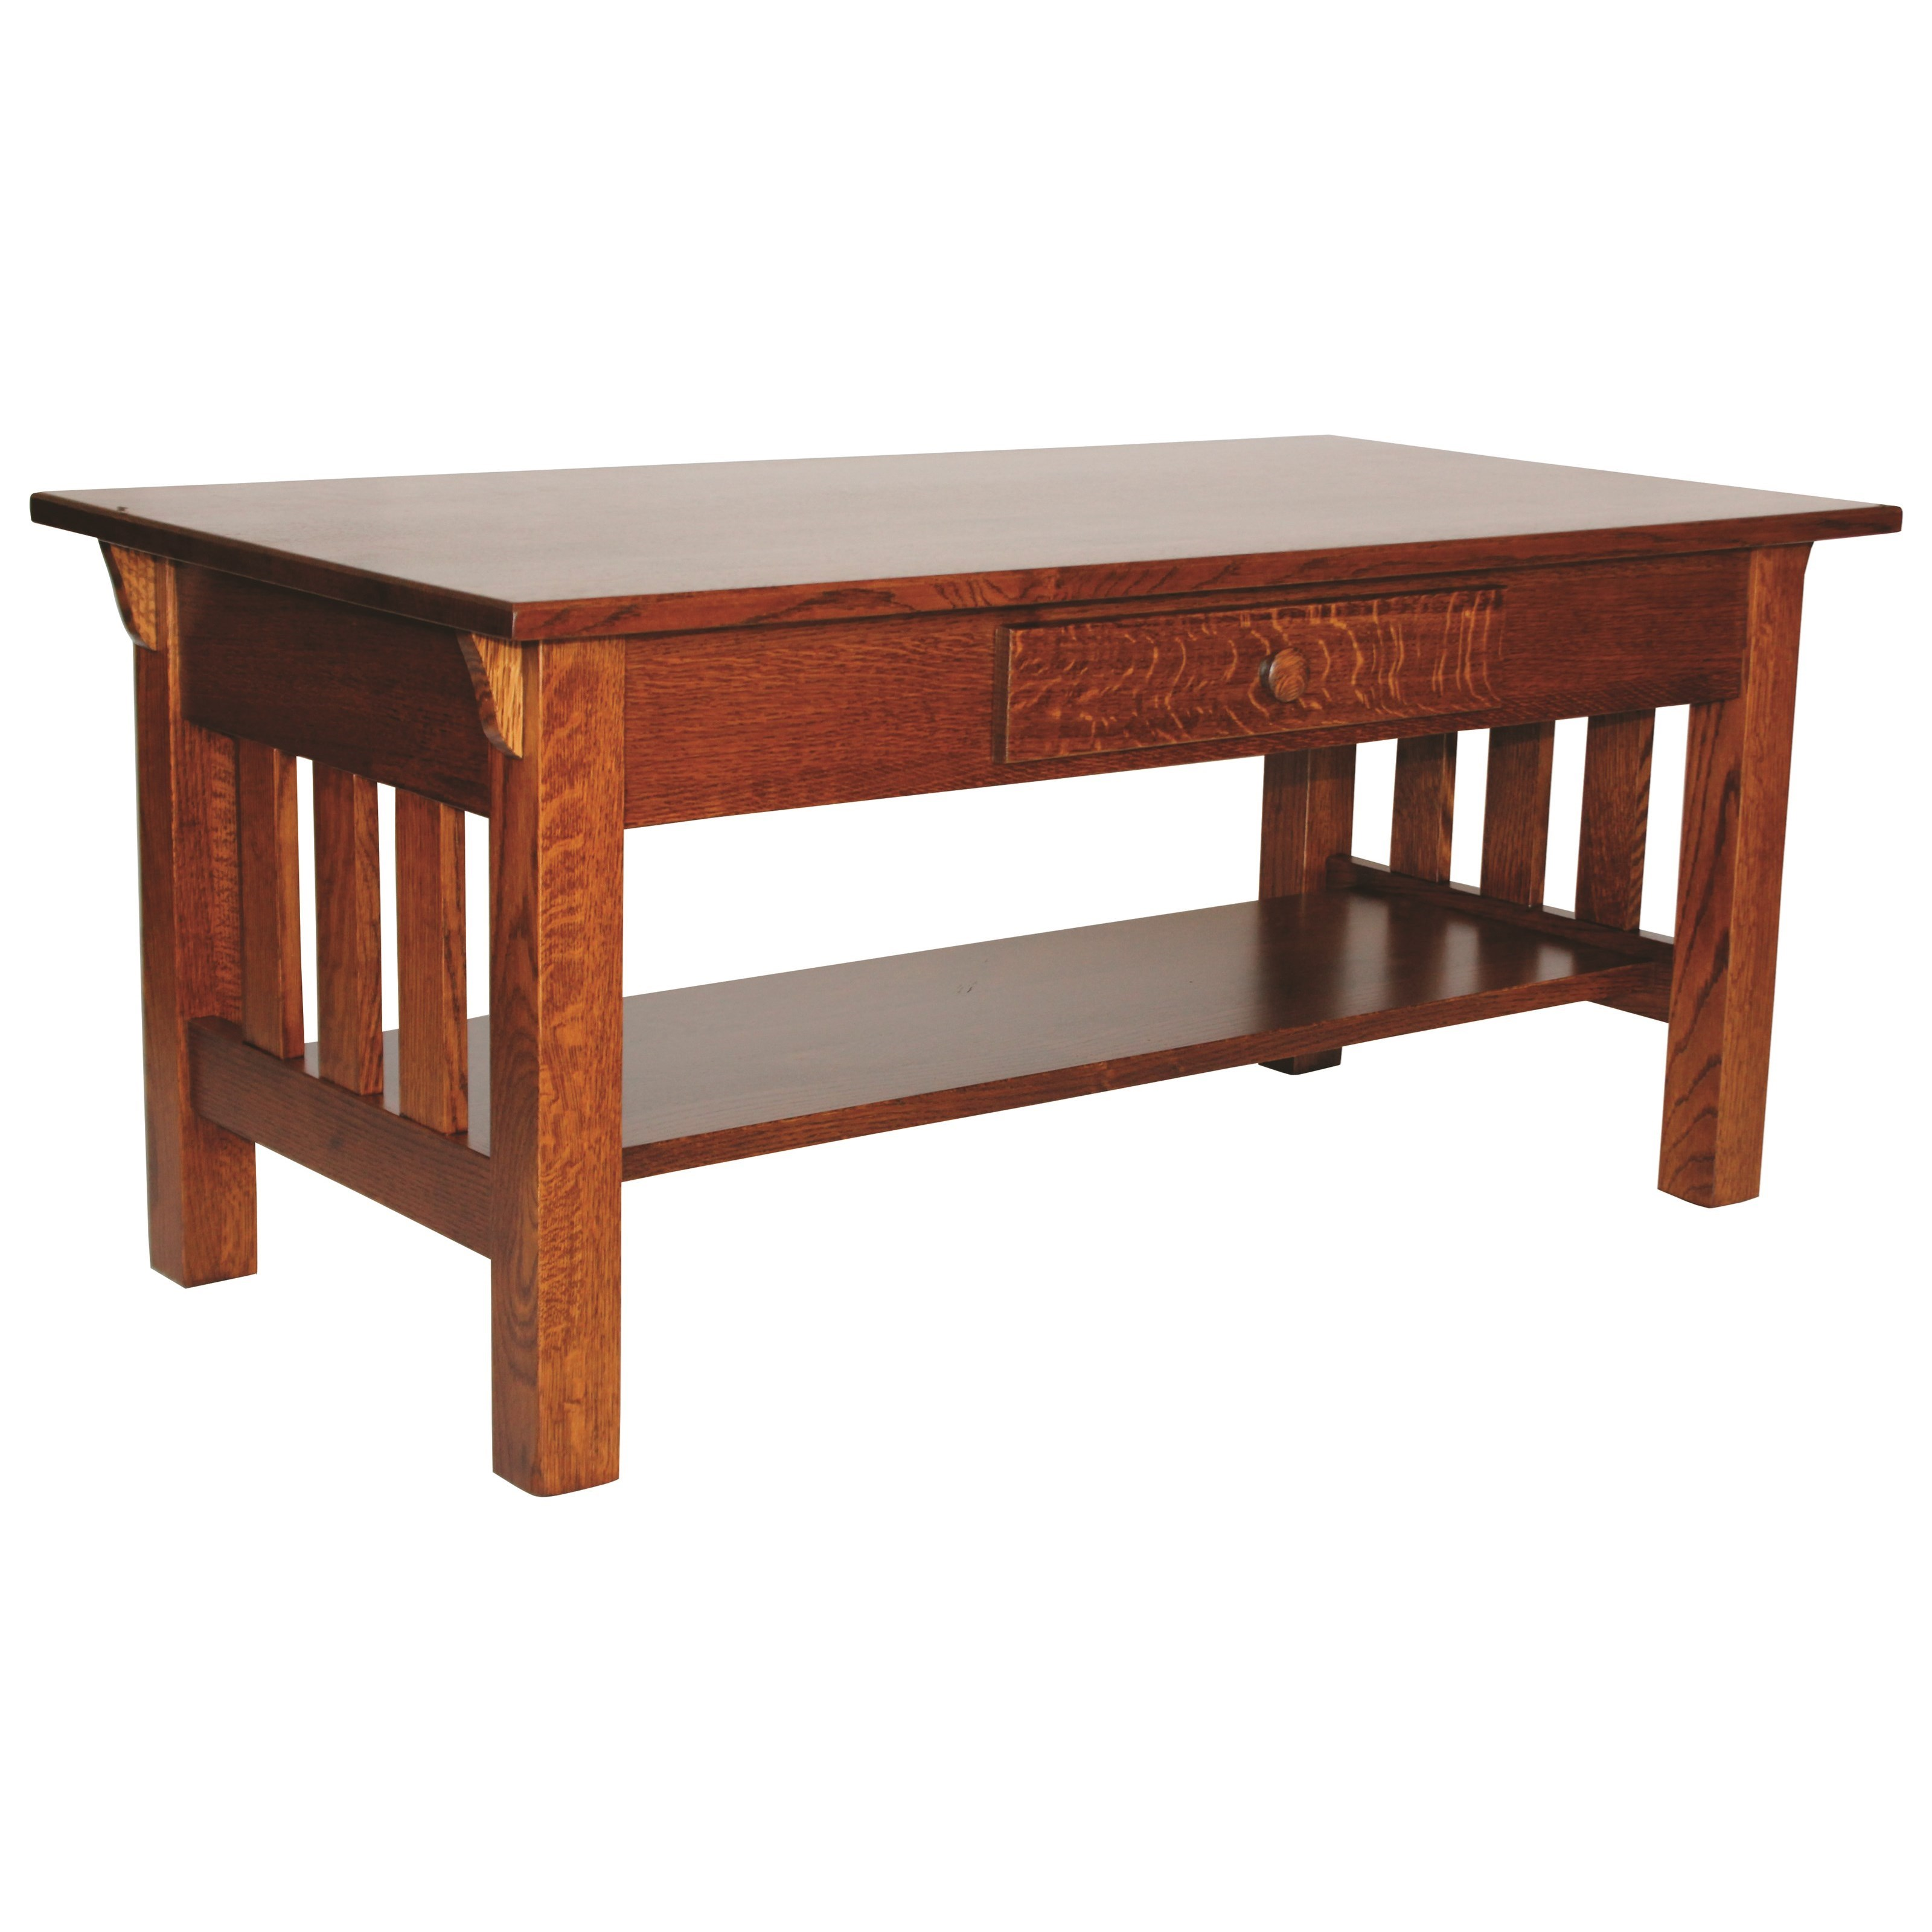 Wide Slat Mission Coffee Table by Ashery Woodworking at Saugerties Furniture Mart